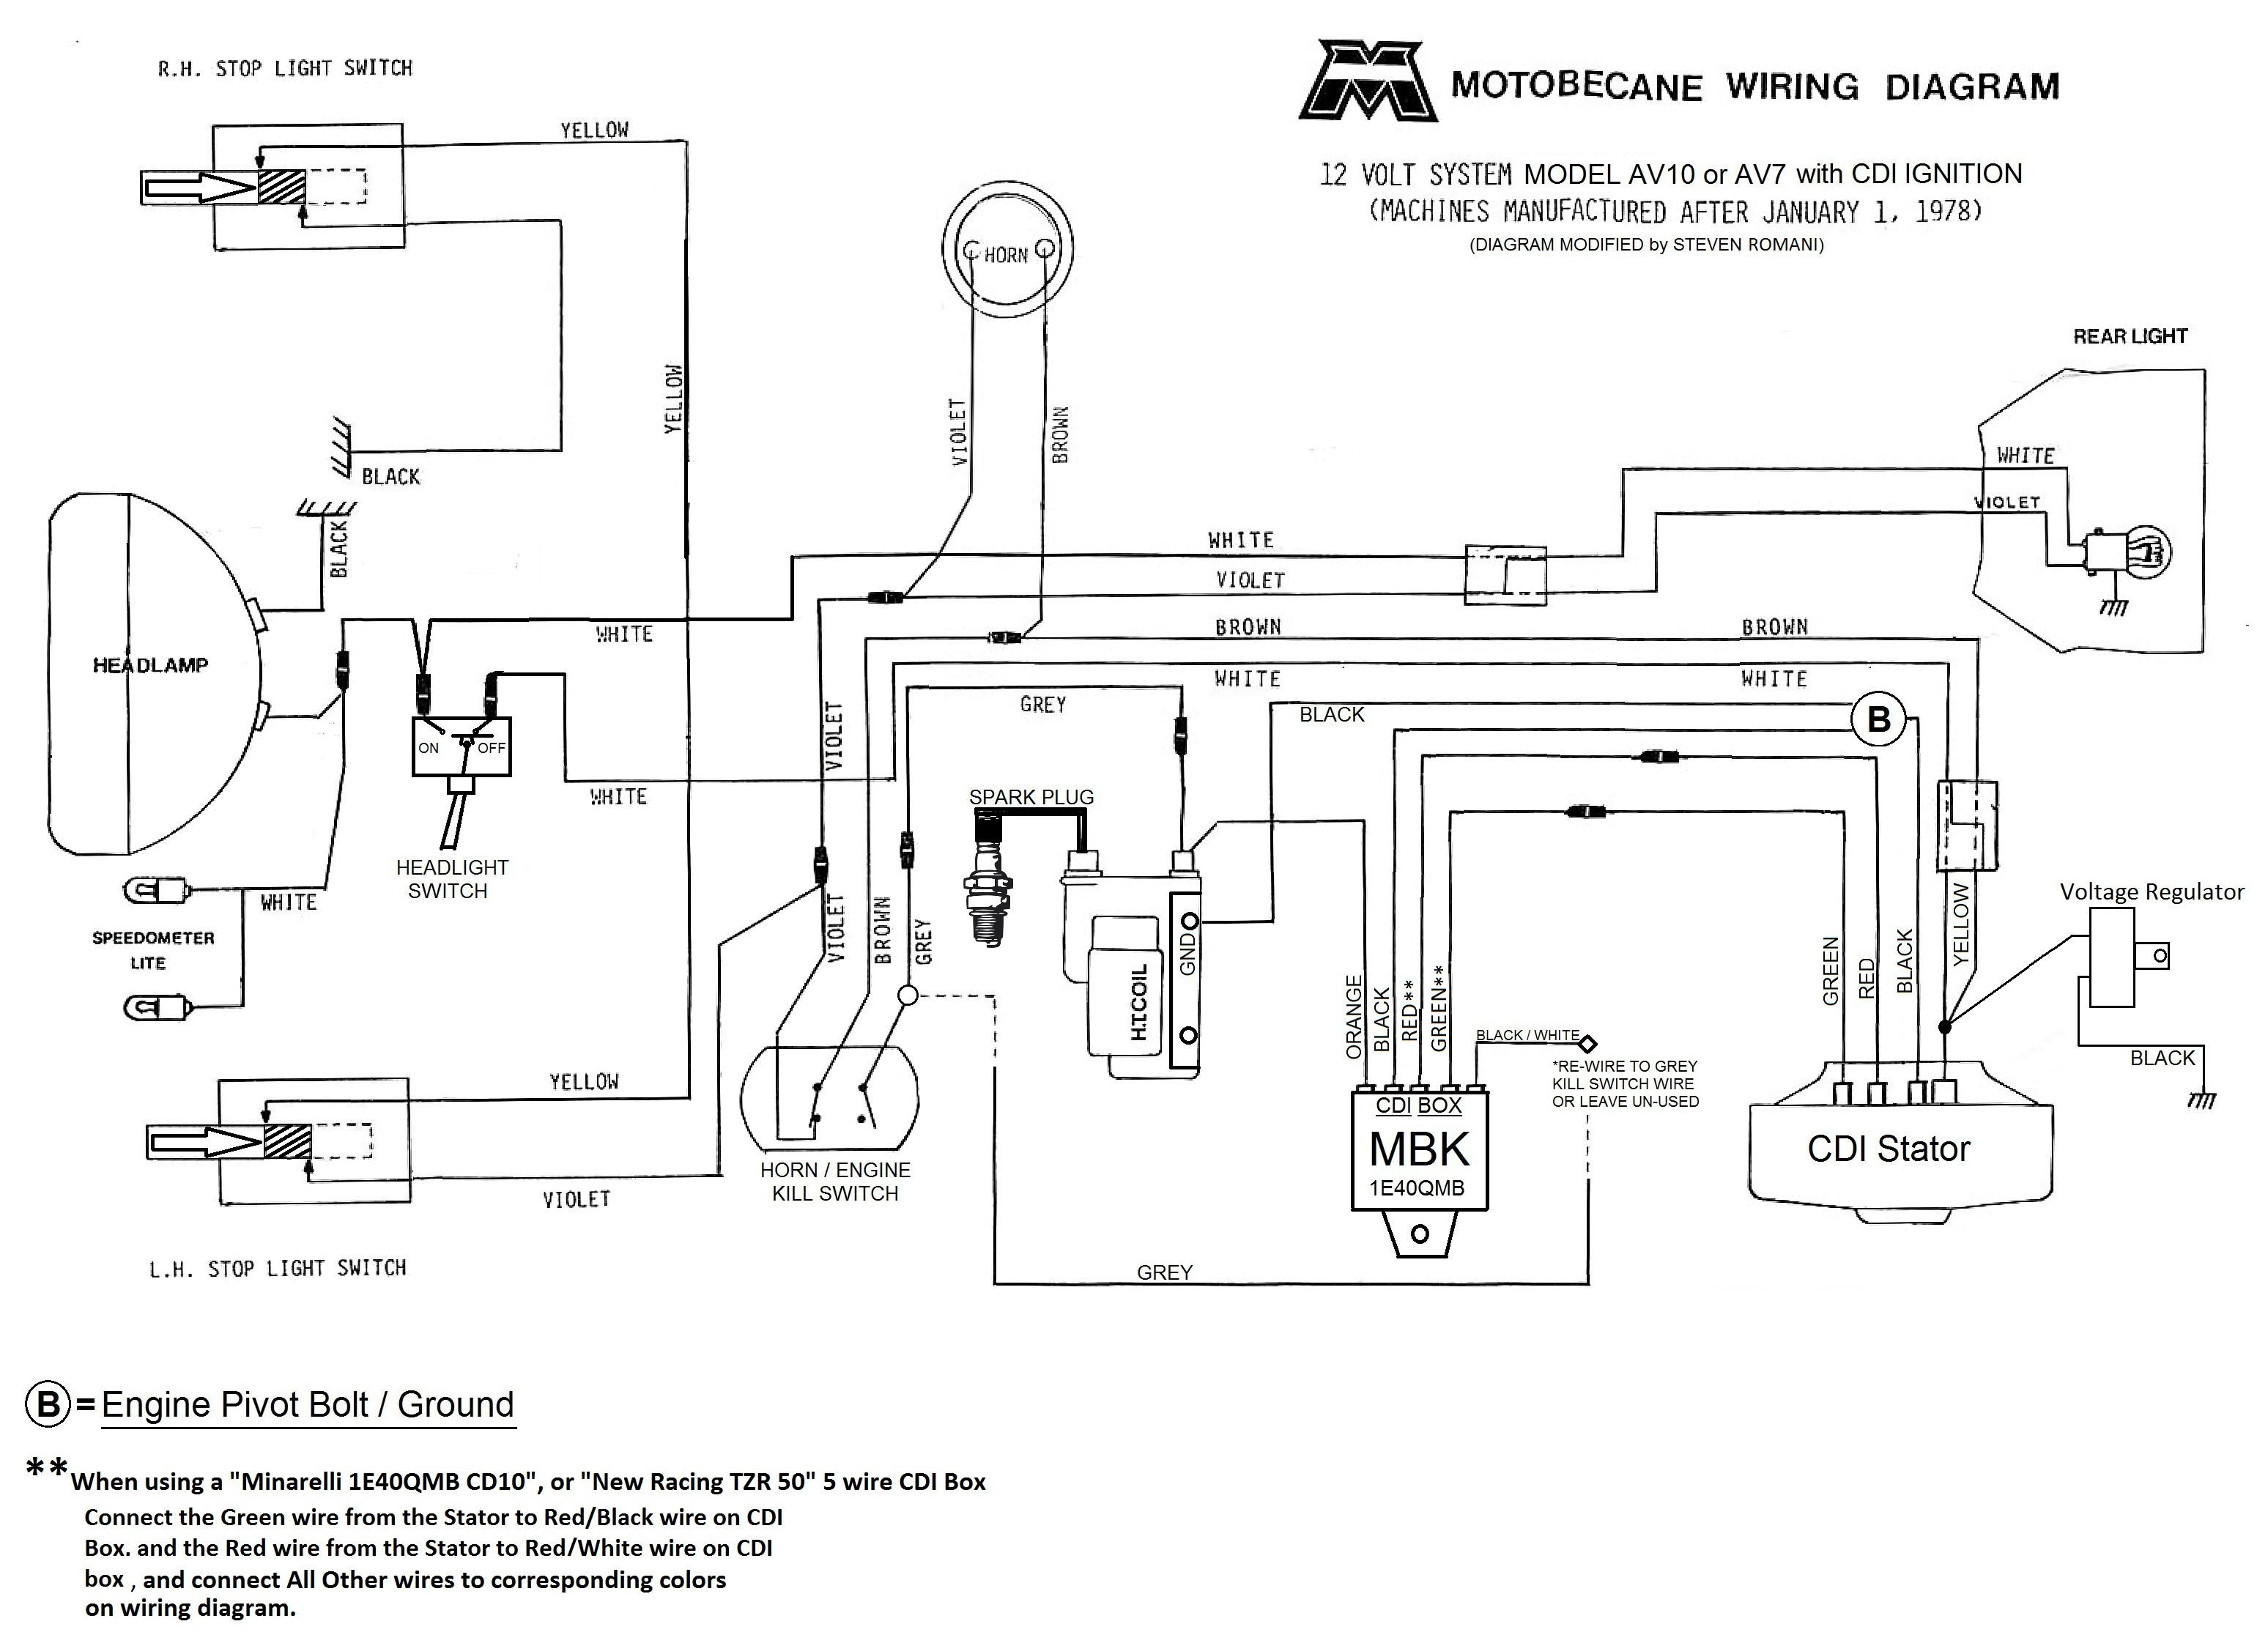 motobecane wiring diagrams moped wiki home wiring diagrams motobecane 12v cdi wiring diagram av10 and av7 jpg